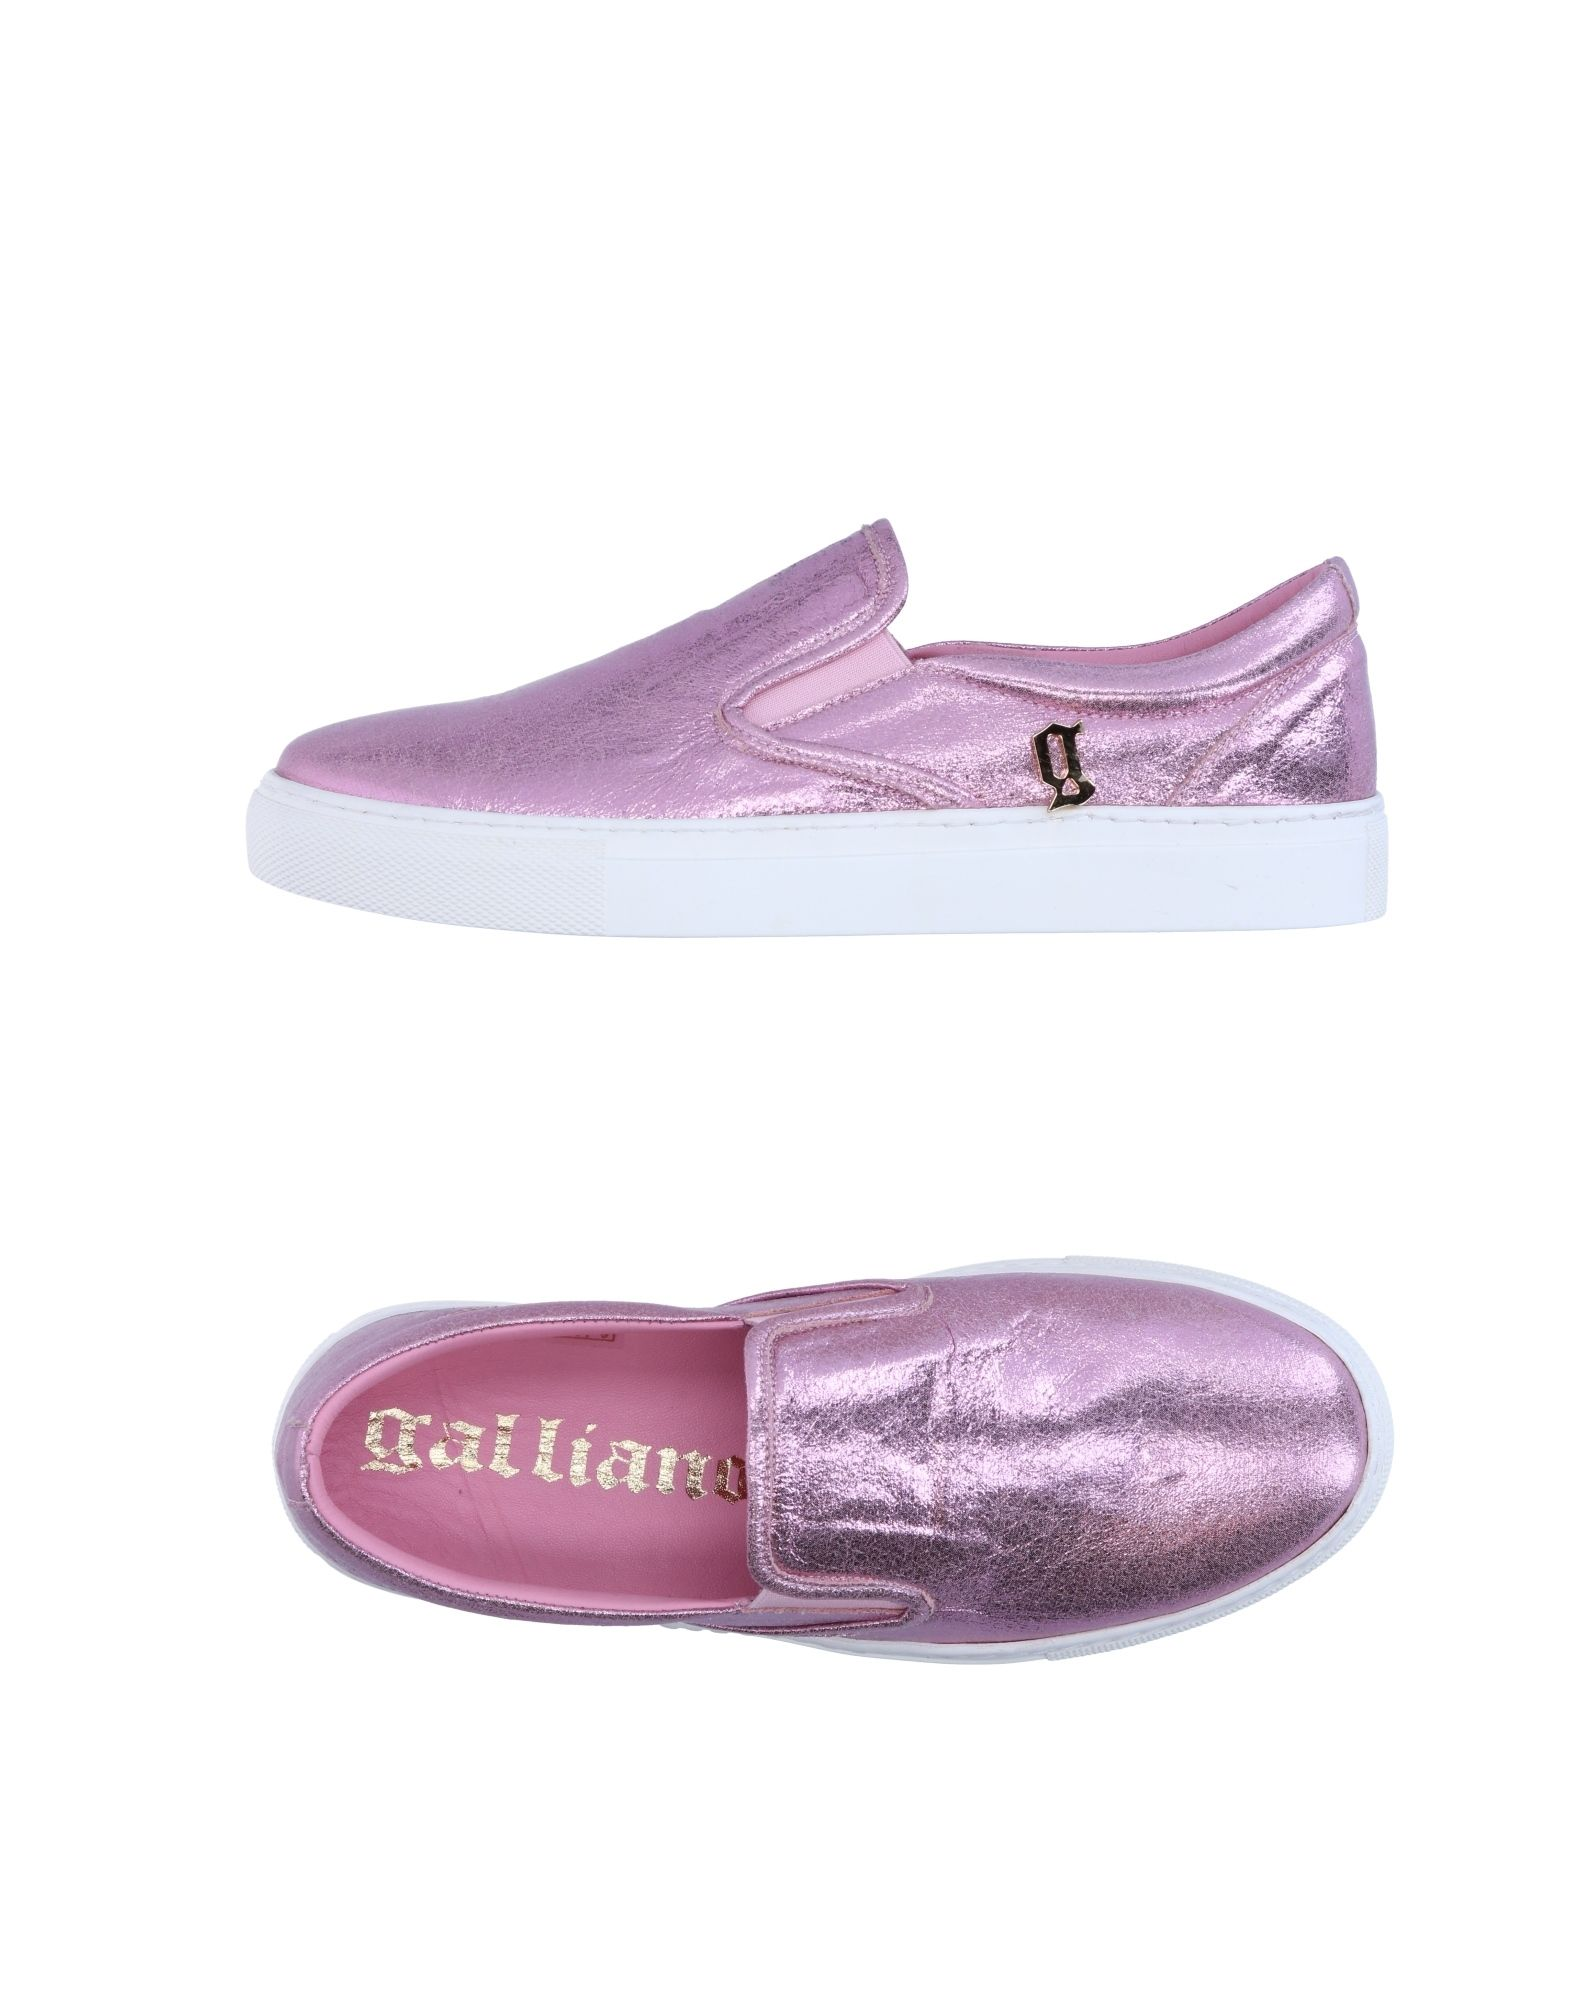 Baskets Galliano Femme - Baskets Baskets Baskets Galliano Rose Chaussures casual sauvages 065a75